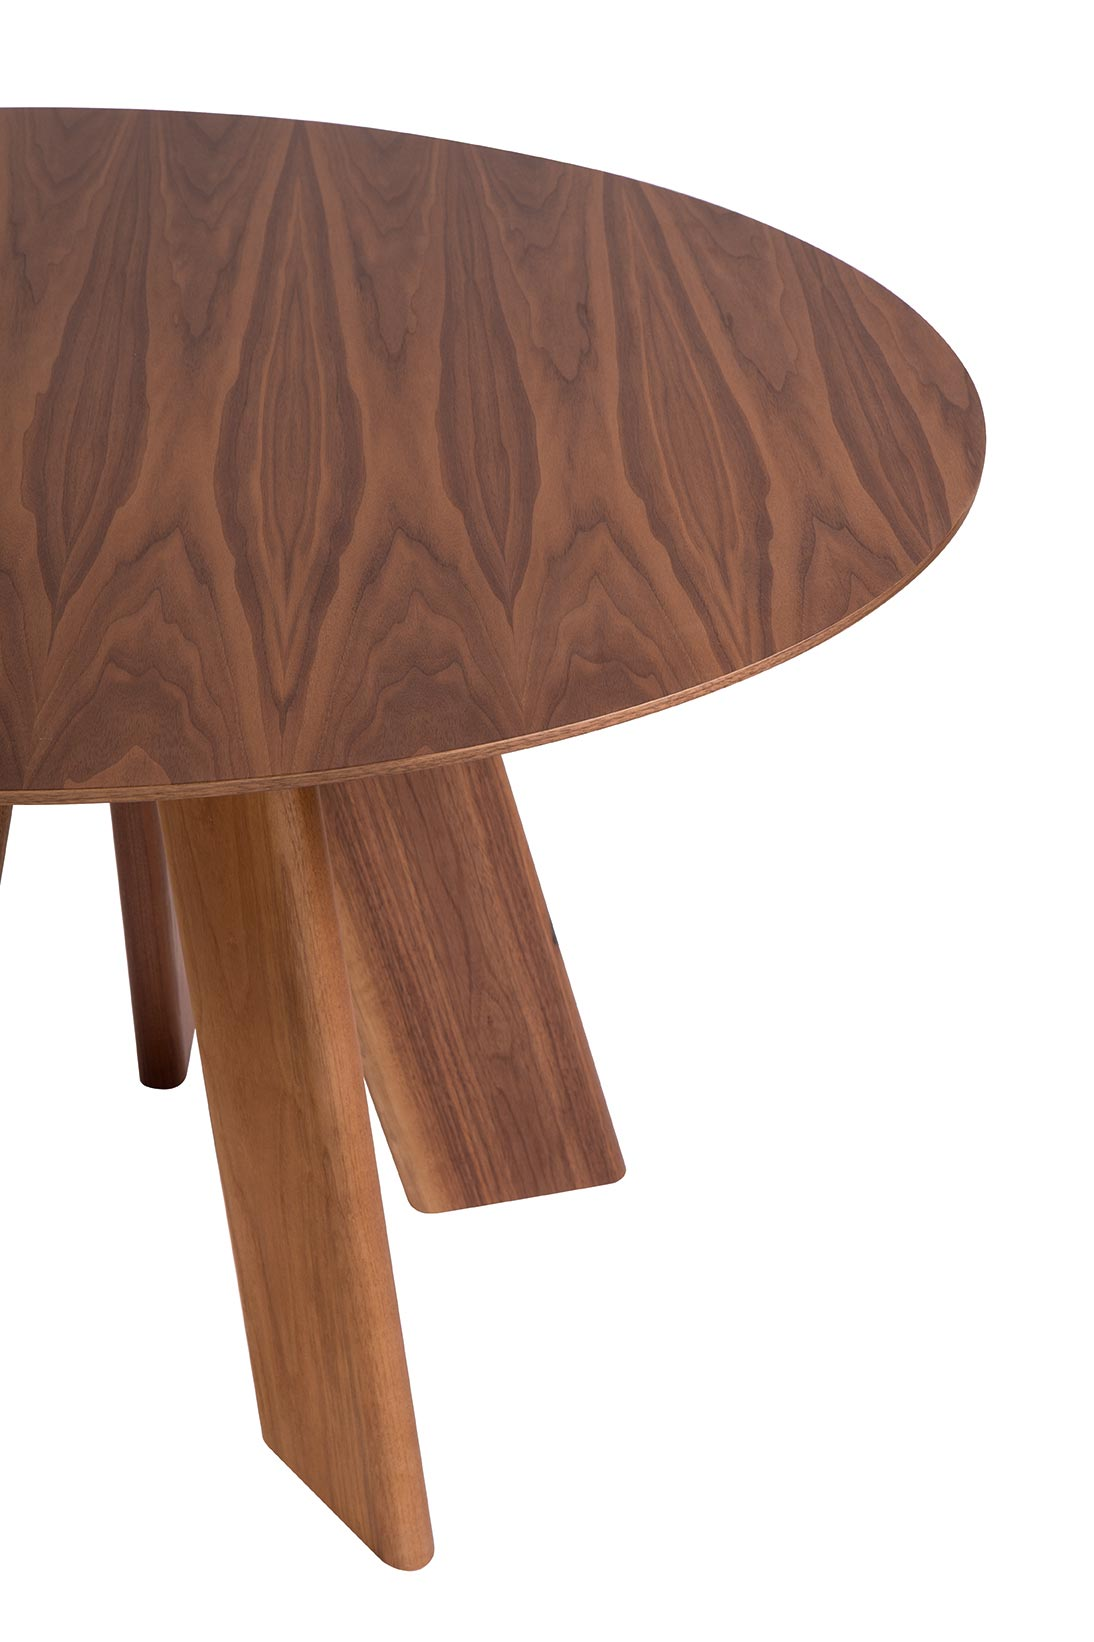 Alhambra 001 Ra Round Table - <p>Round table in various sizes with shaped top with thin edge,<br /> base with 5 legs total lacquered or solid wood.</p>  Maxfine Top is available for 3 sizes: Ø120 x H75 Cm, Ø130 x H75 Cm, Ø150 x H75 Cm | Matter of Stuff